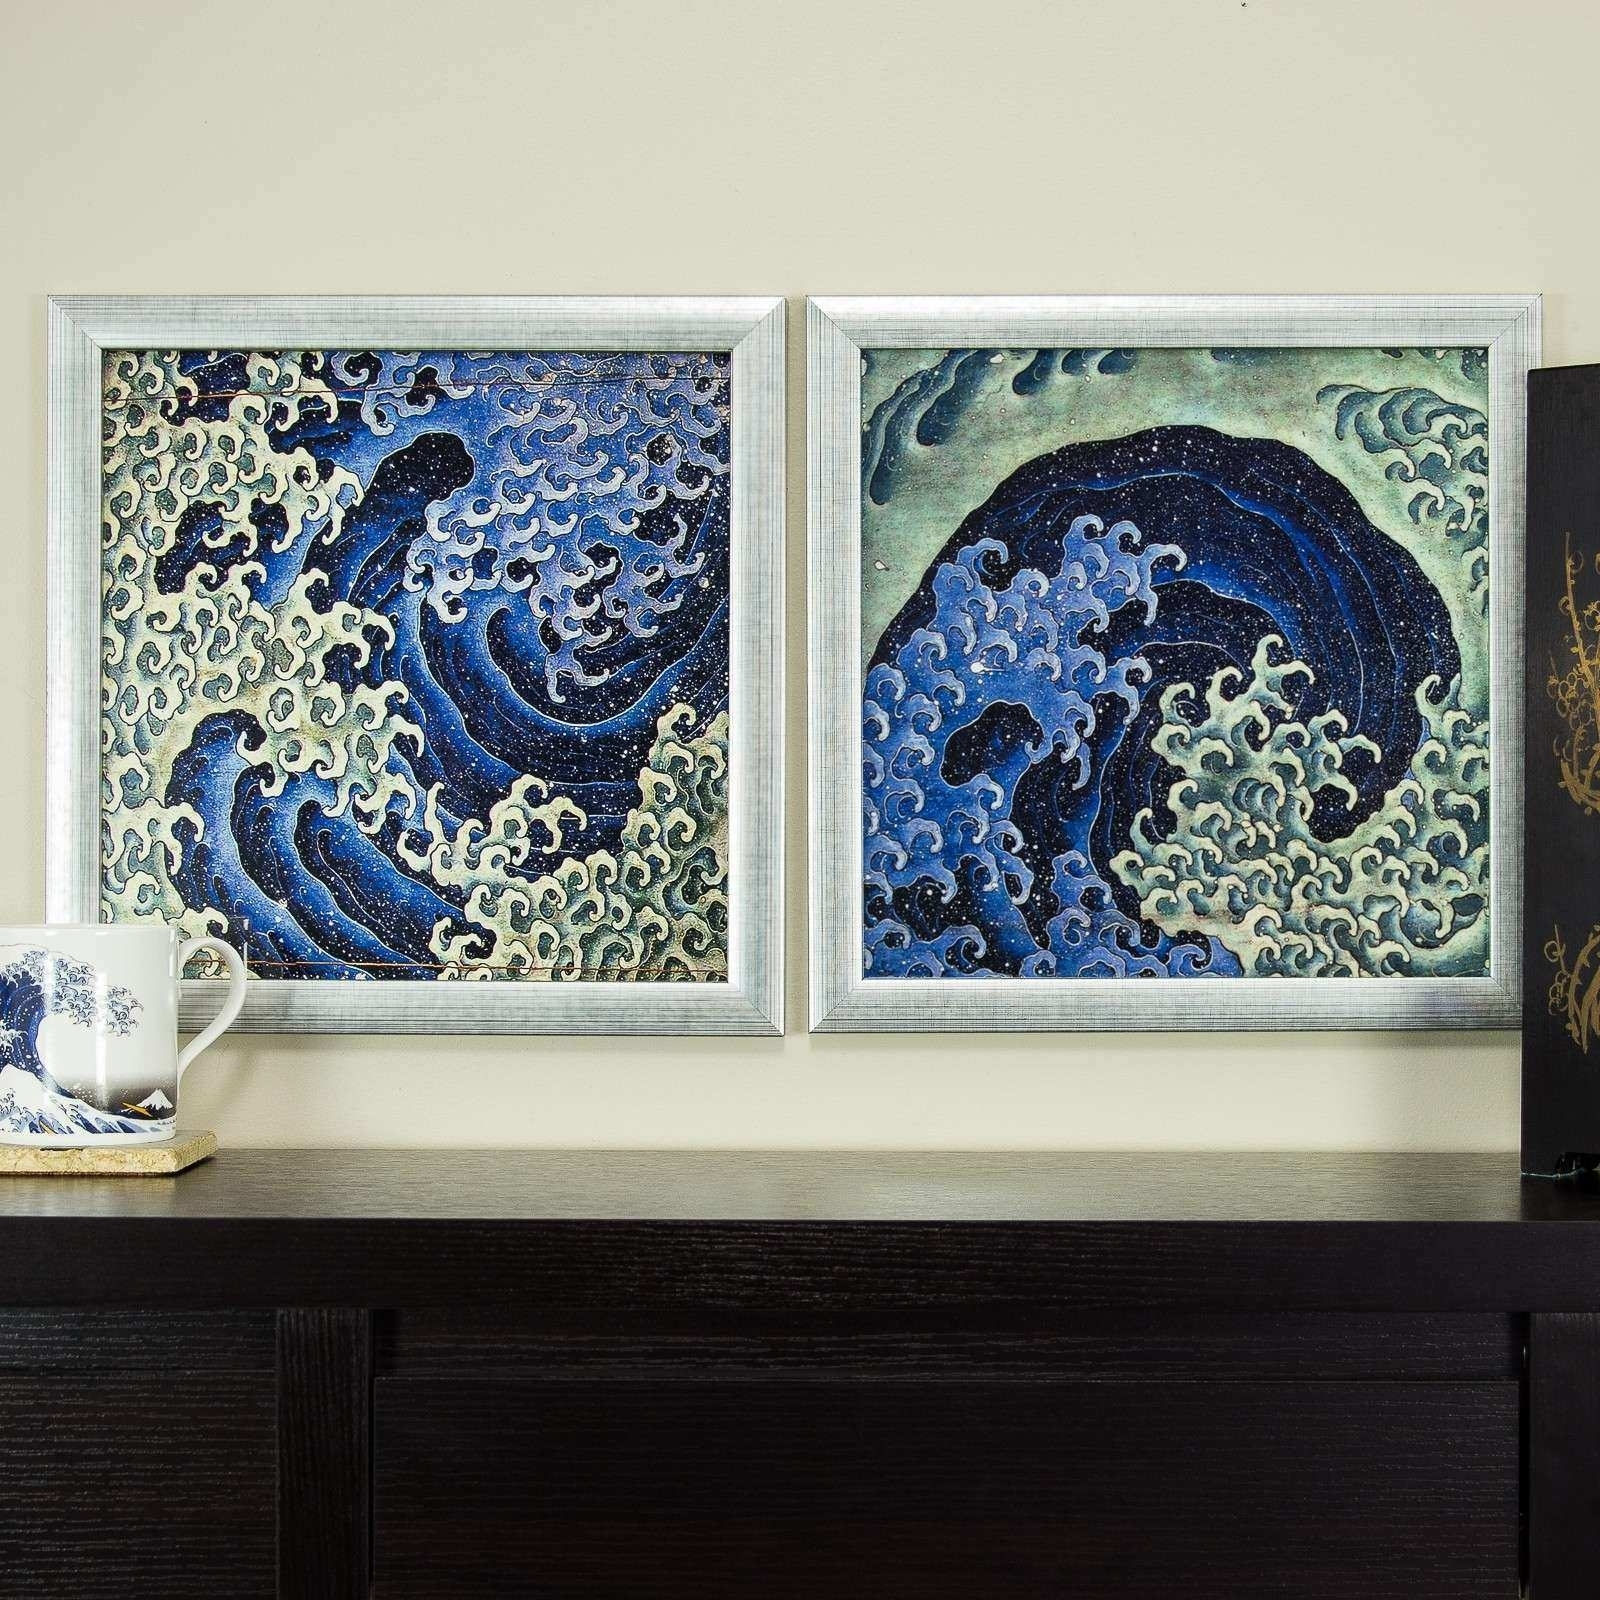 Japanese Wall Decor Elegant Masculine Feminine Wave 12X12 Framed with regard to Asian Wall Art (Image 17 of 20)